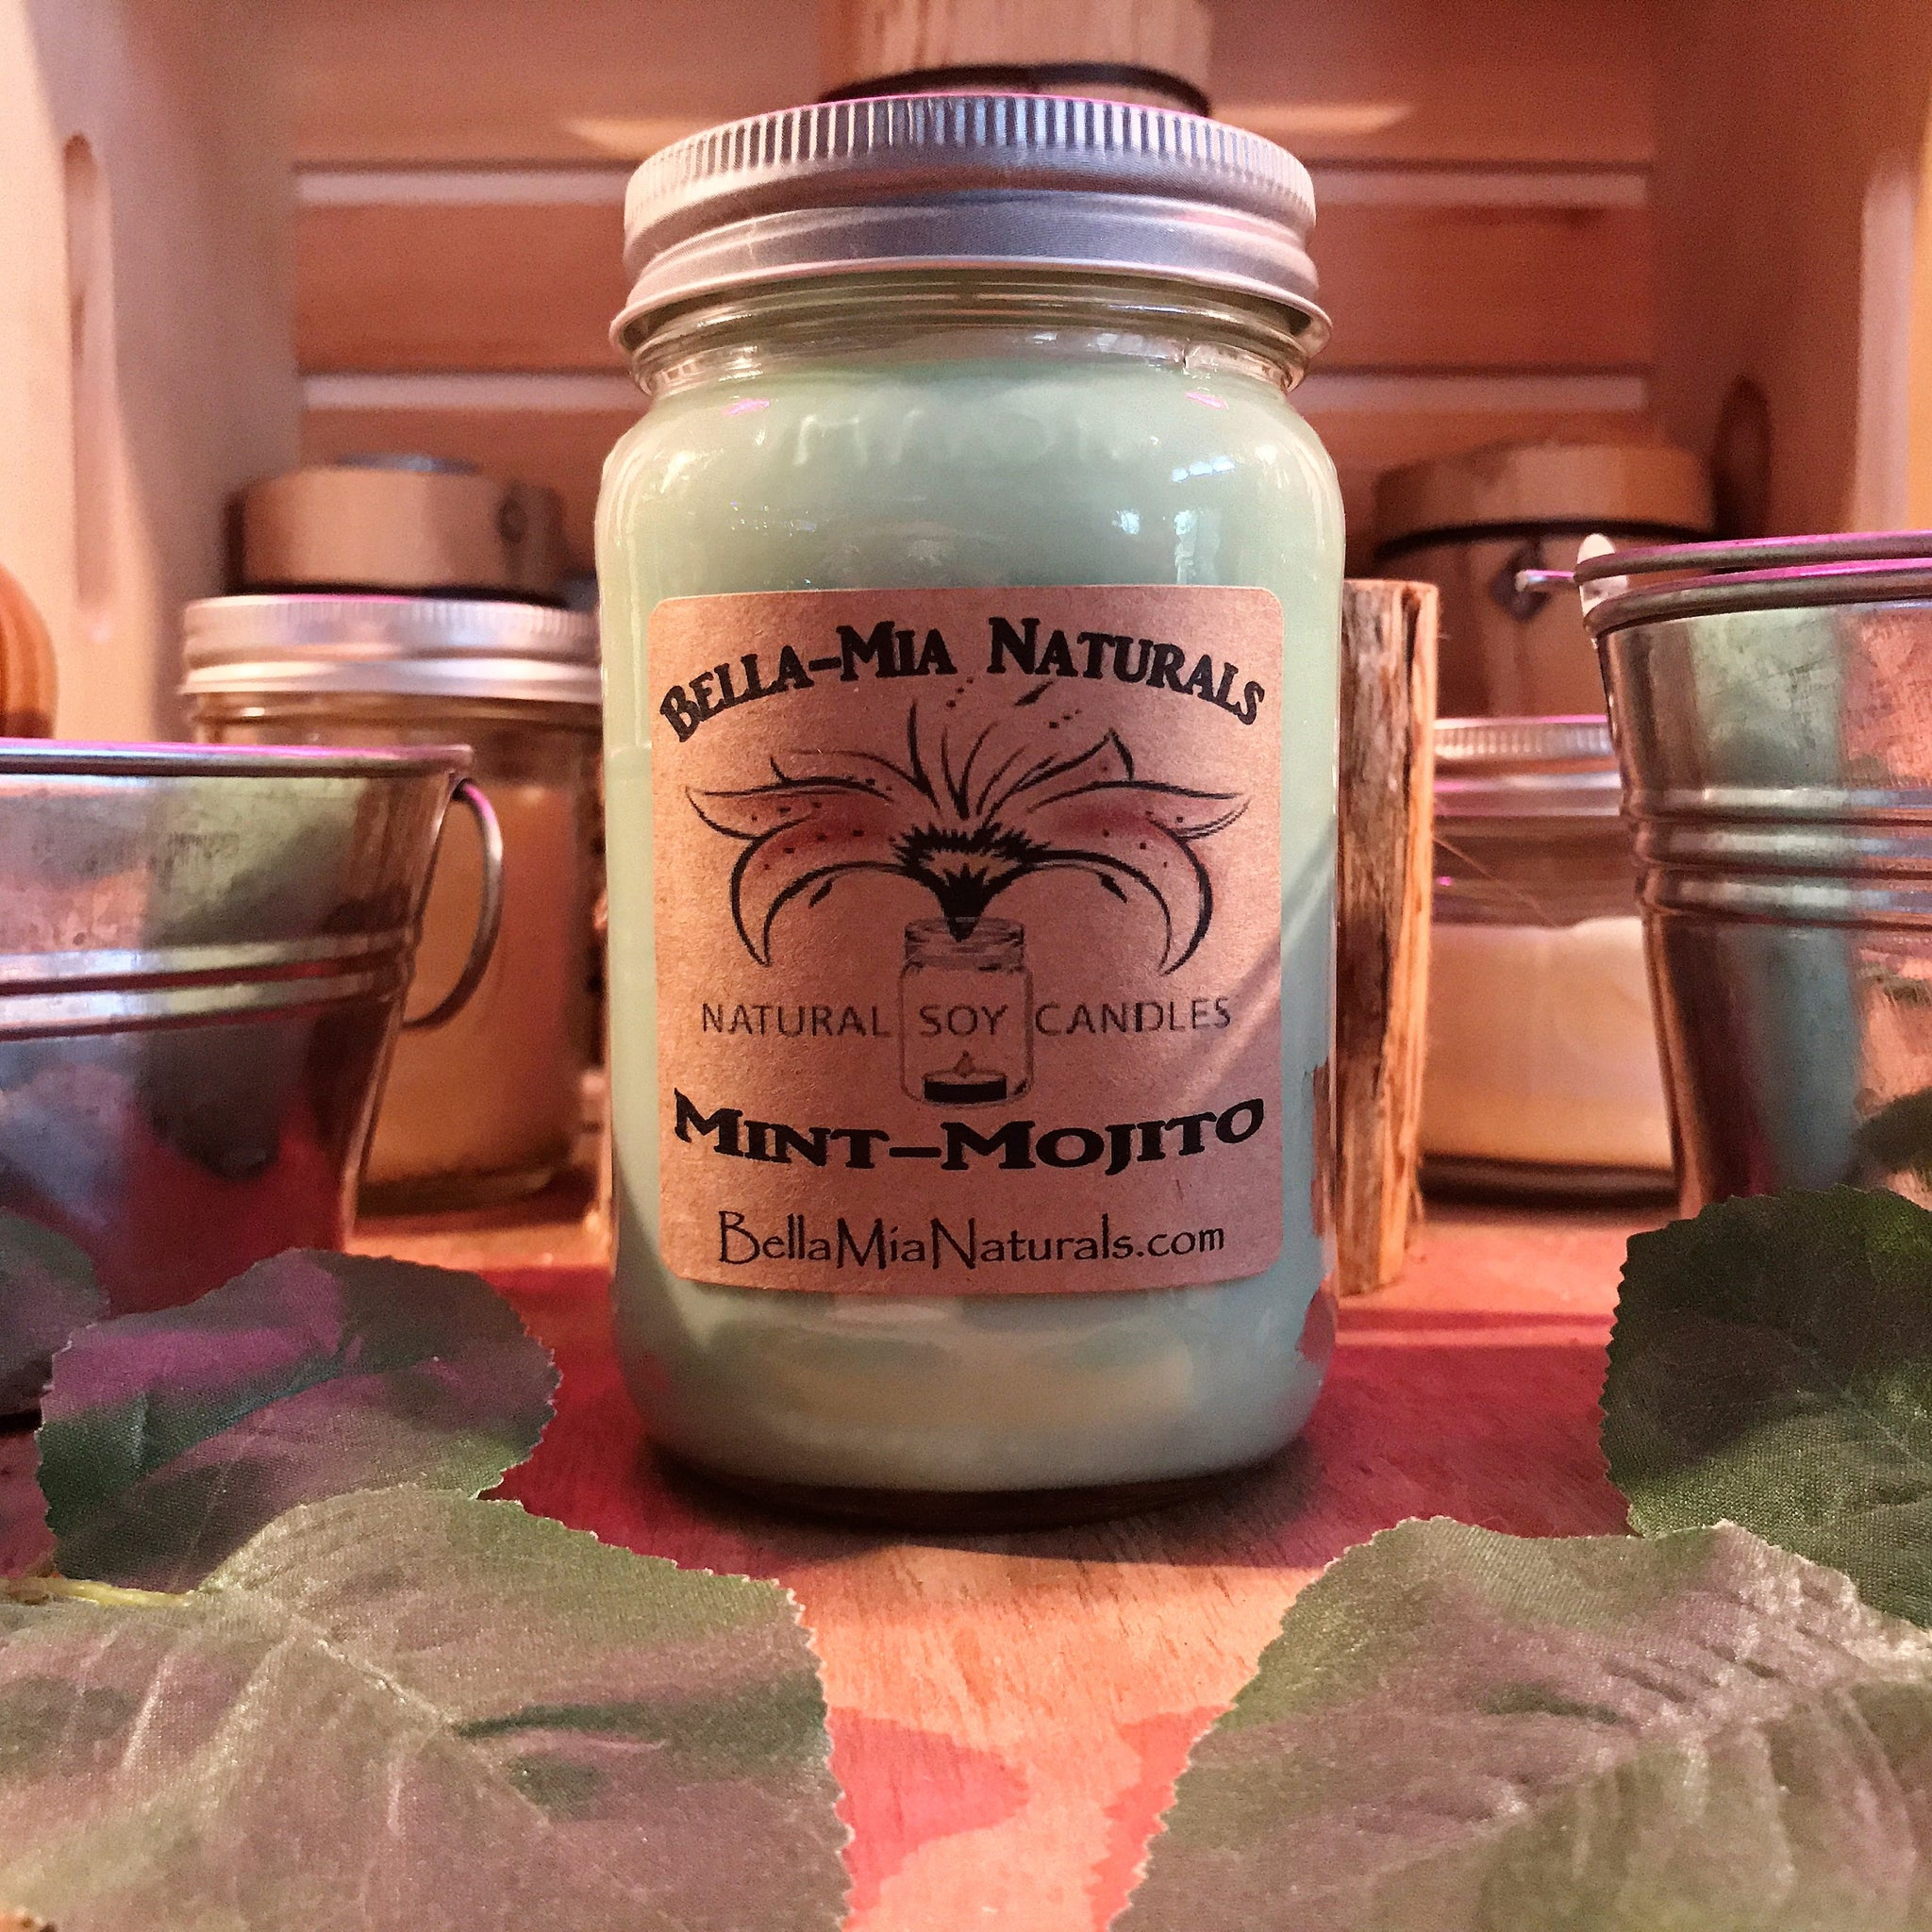 Mint Mojito Natural Hand Poured Soy Candles